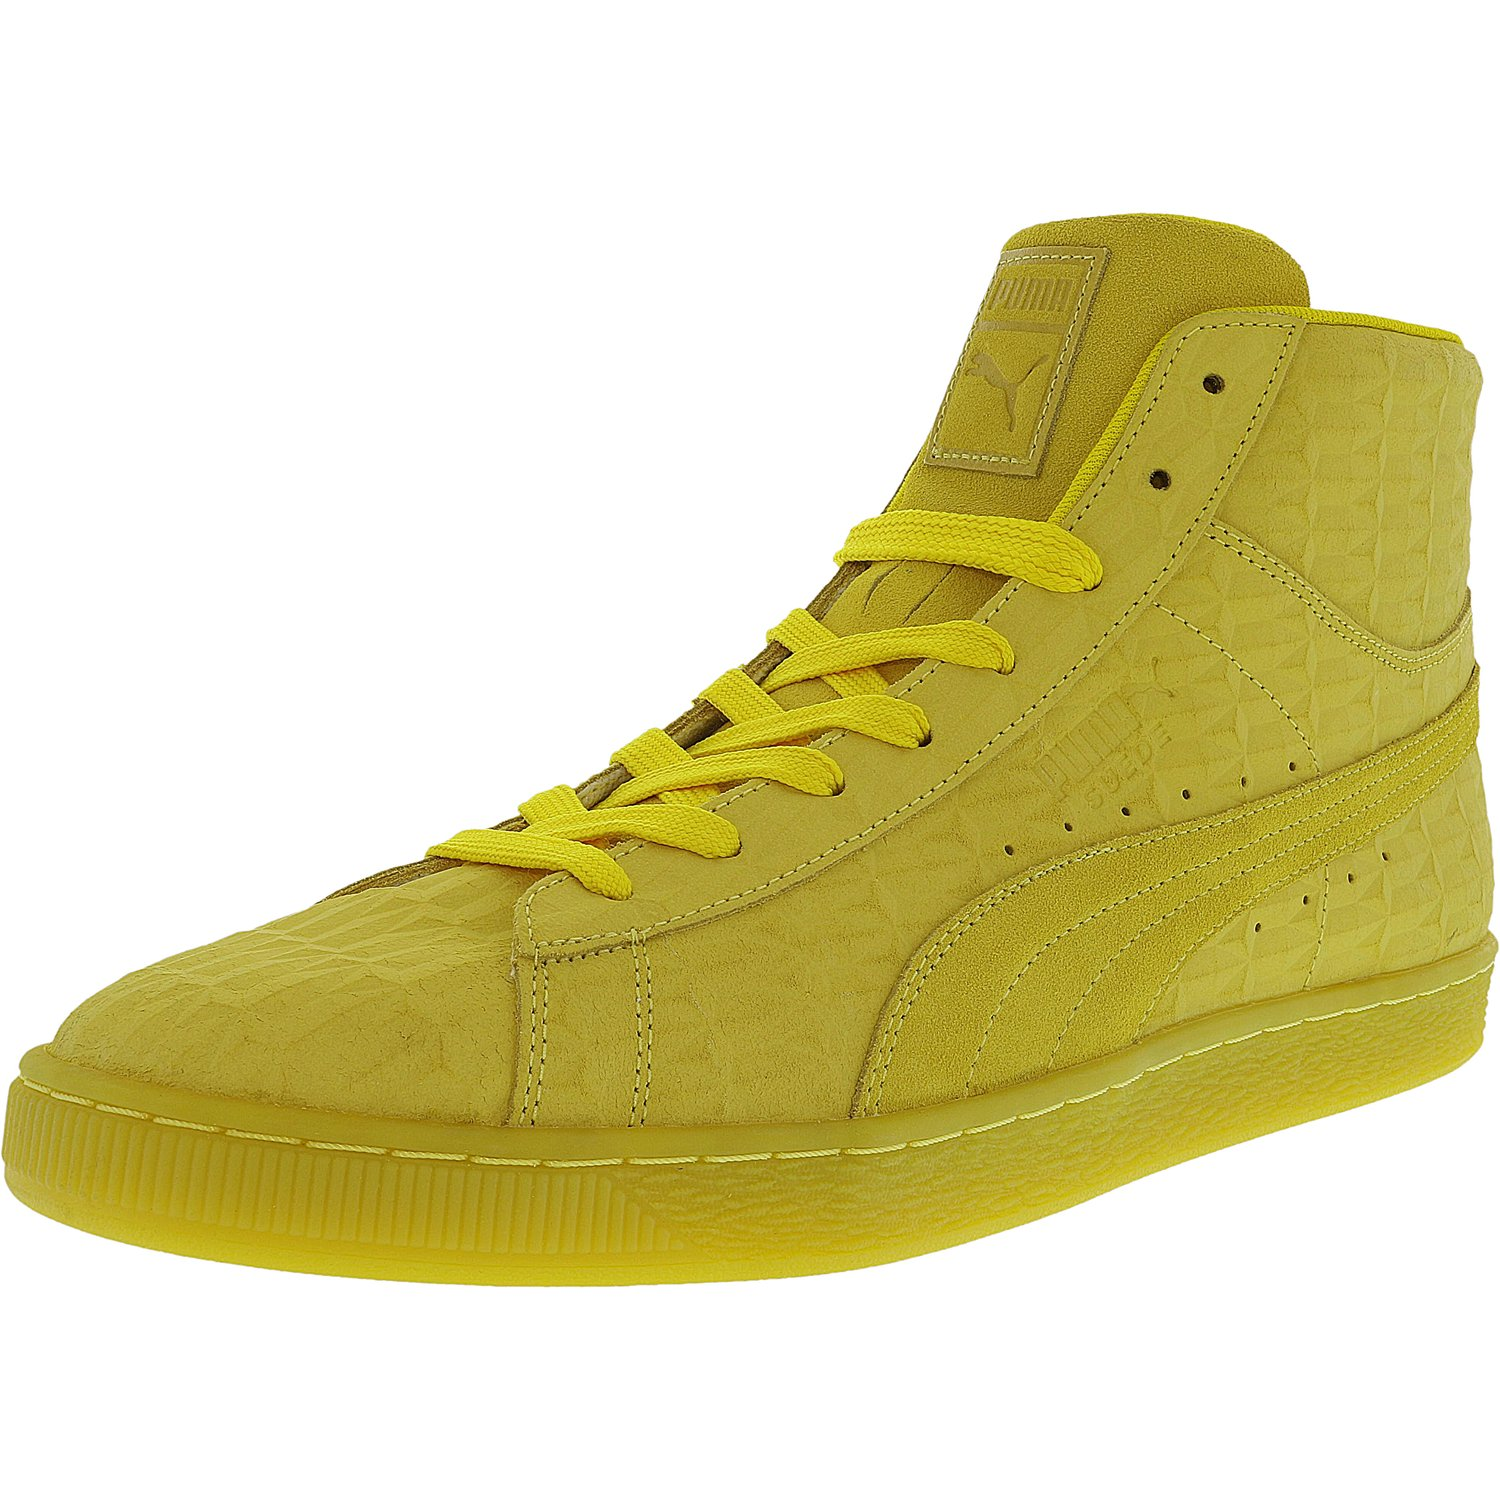 Puma Men's Mid Me Iced Suede Buttercup   White Fashion Sneaker 8M by Puma